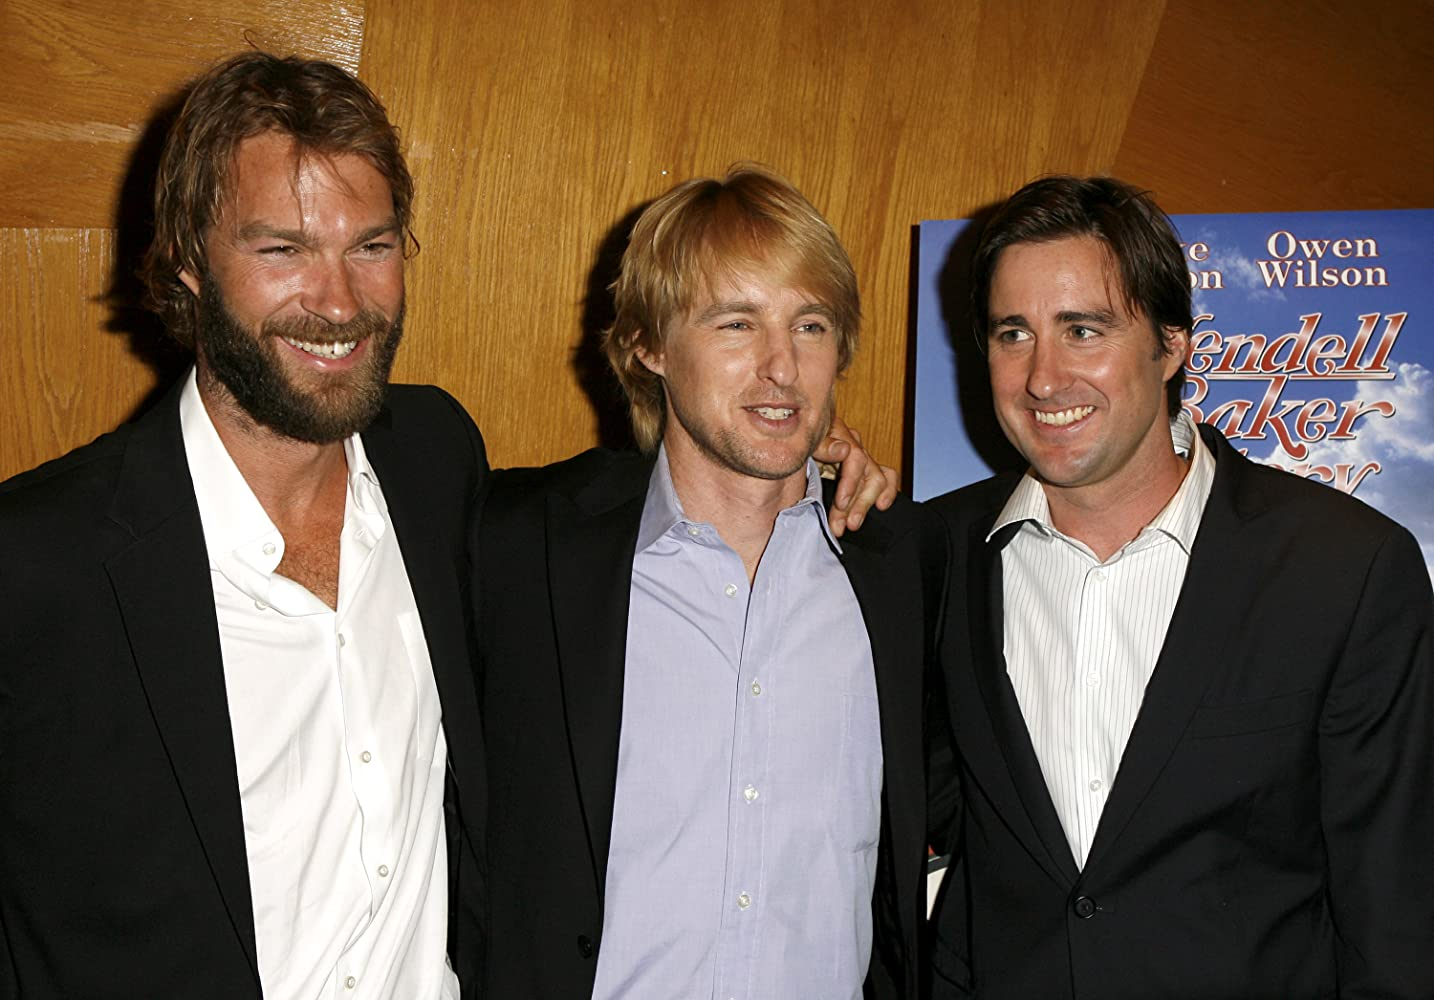 Luke Wilson, Owen Wilson, and Andrew Wilson